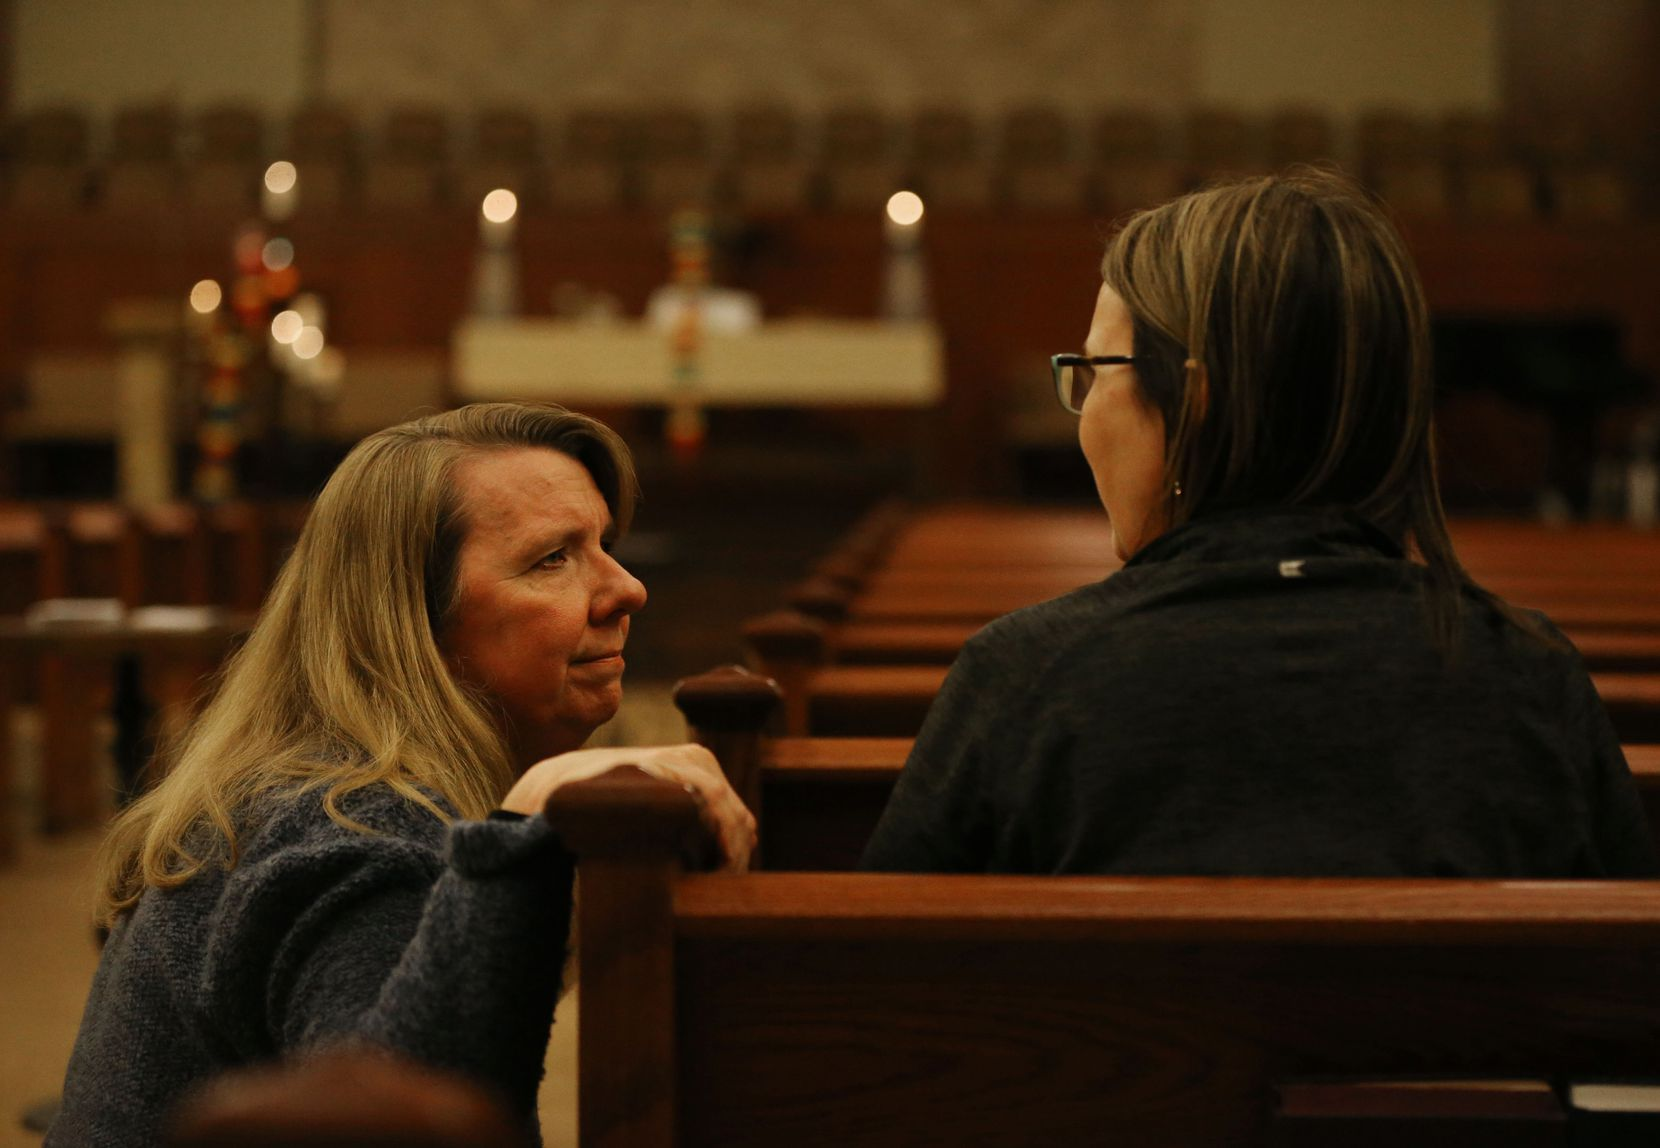 The Rev. Laura Echols-Richter (left) speaks with church member Tina McGarry in the sanctuary at Grace Avenue United Methodist Church in Frisco. The Frisco church opened its doors to prayers after the denomination's anti-LGBTQ vote in St. Louis on Tuesday.